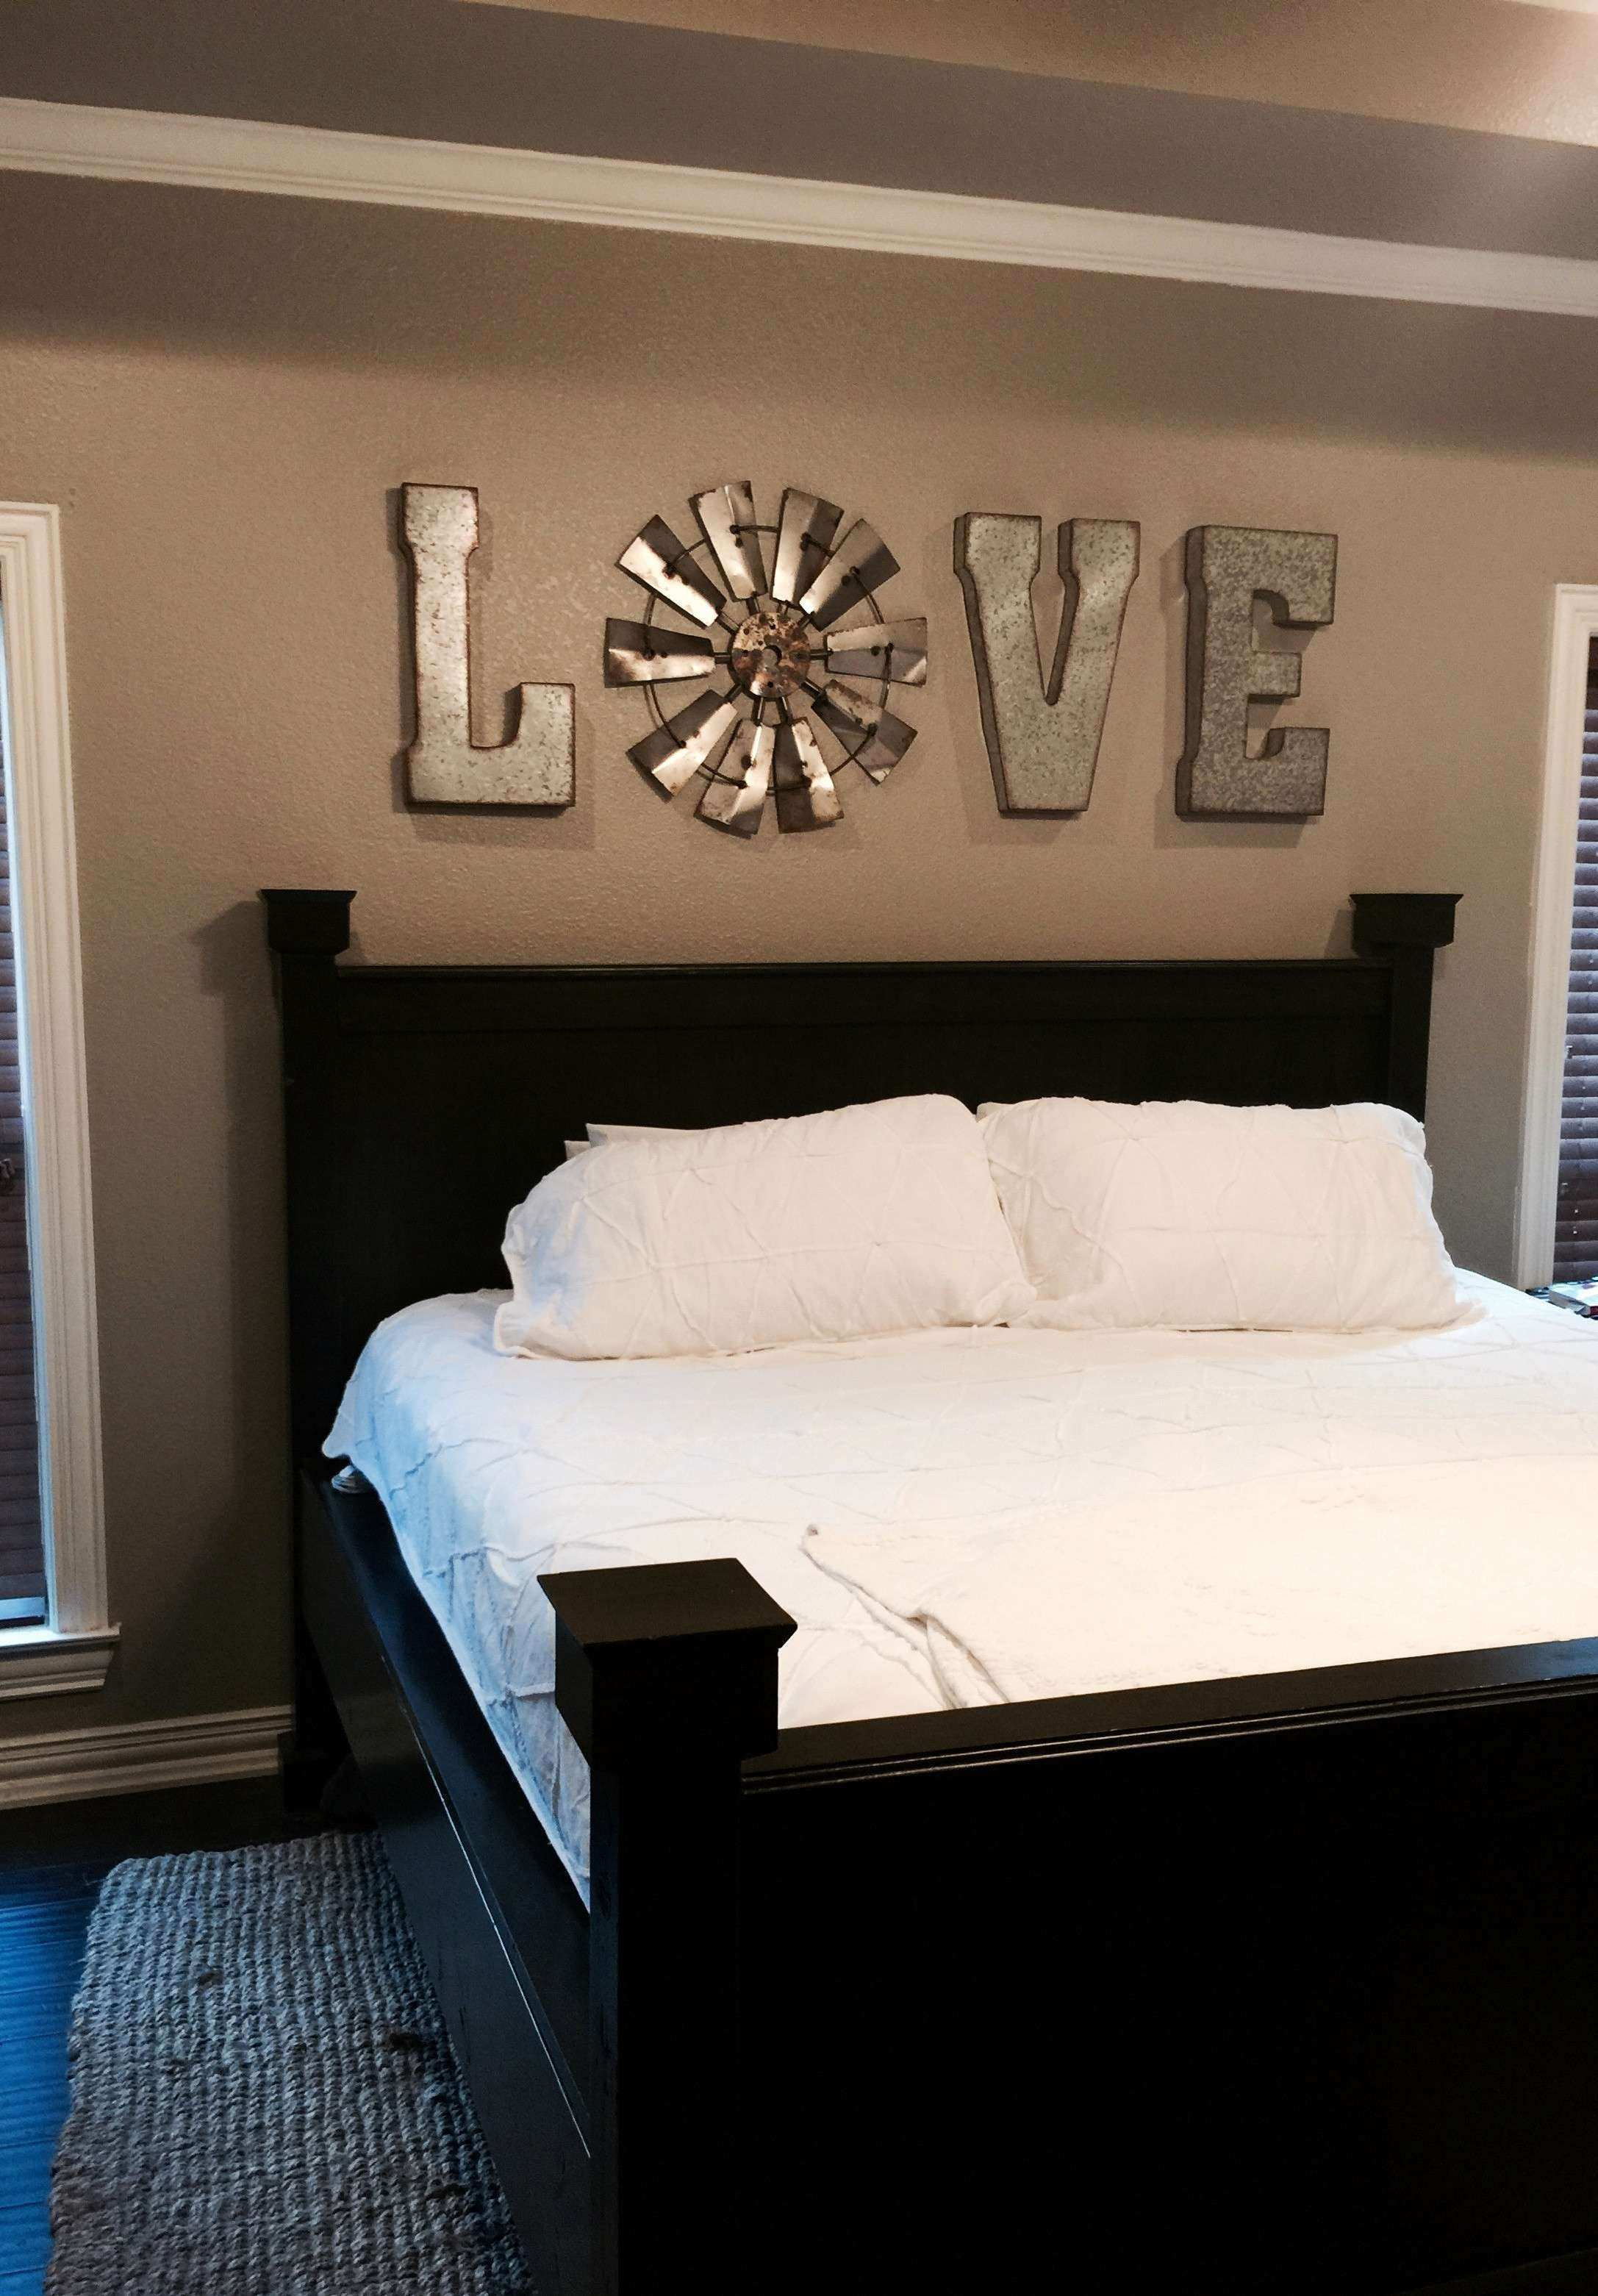 Modern Bedroom Wall Decor Awesome Ideas for Bedroom Wall Decor